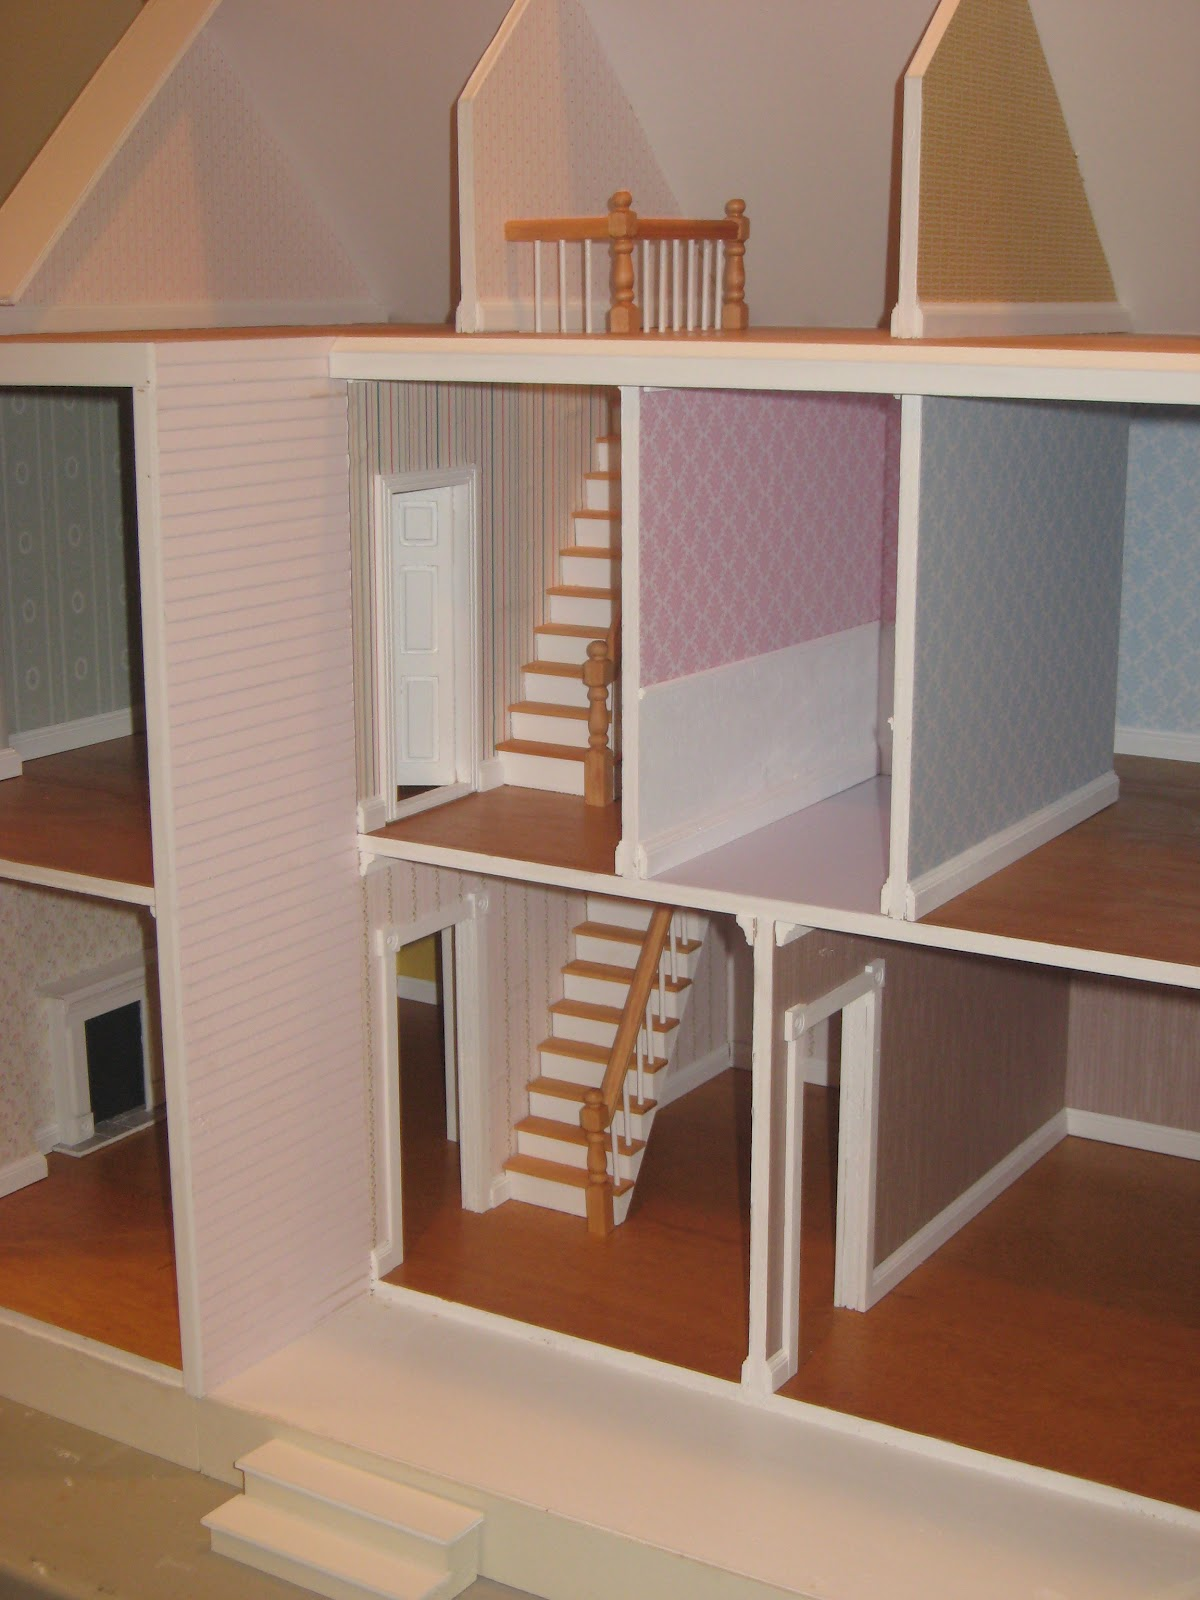 Little Darlings Dollhouses pleted Finished and ON SALE NOW